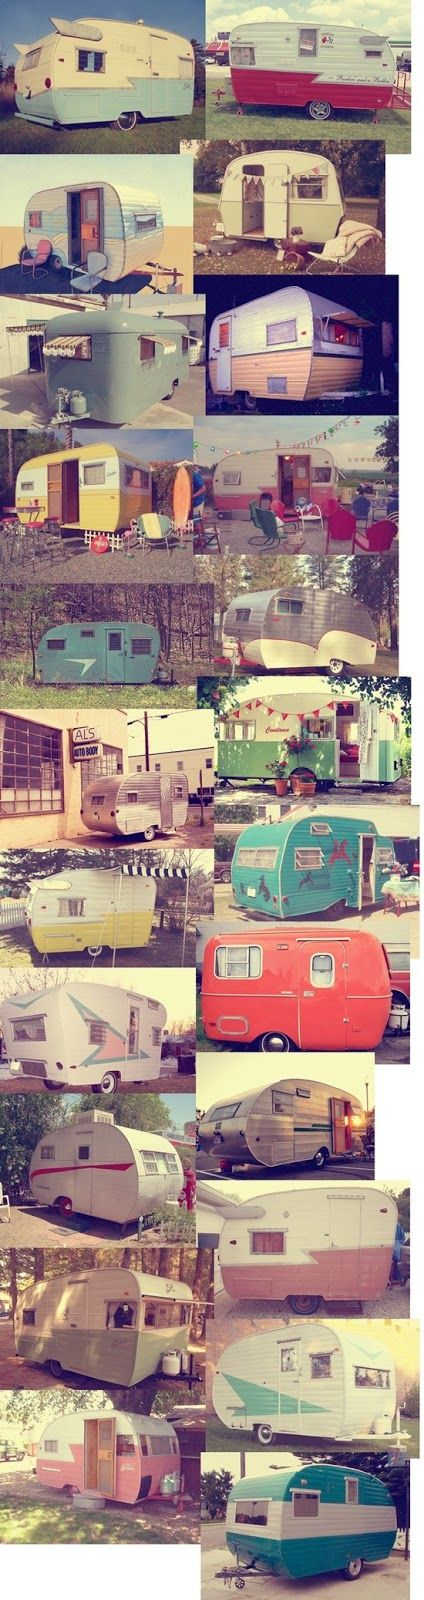 the MomTog diaries: Camper Daydreaming: A Little Vintage Eye Candy